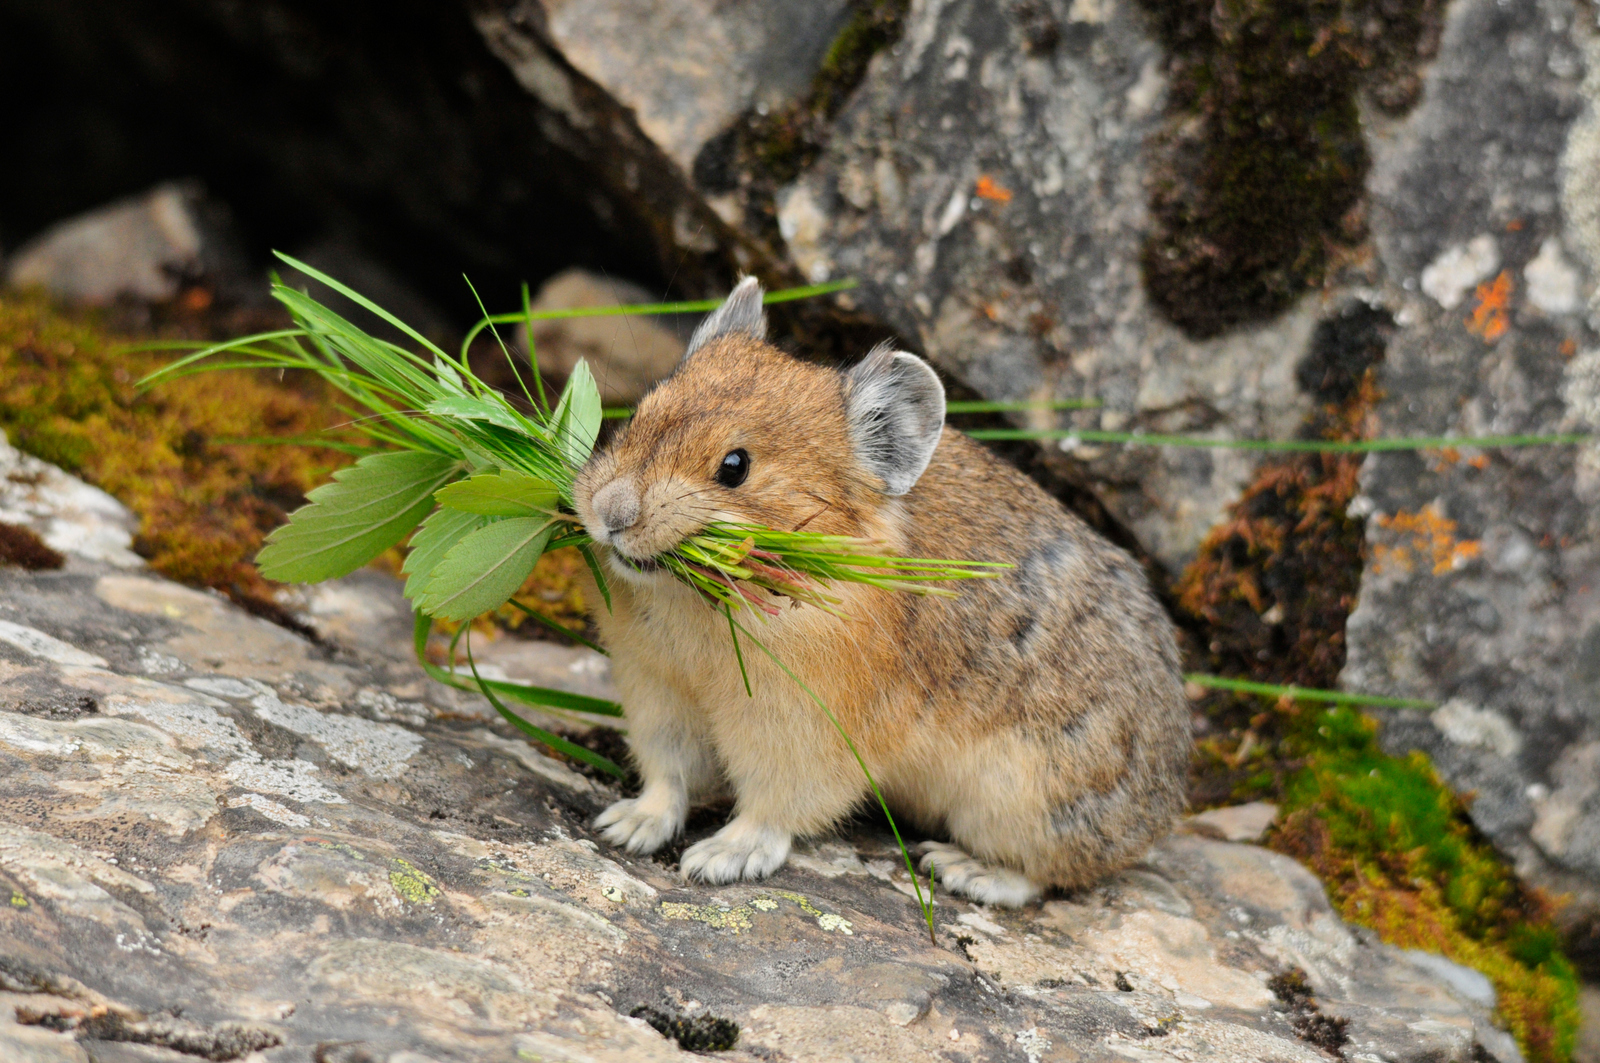 Pika | Habitat is over 11,000 Feet | Survive in temperatures less than 70 °F